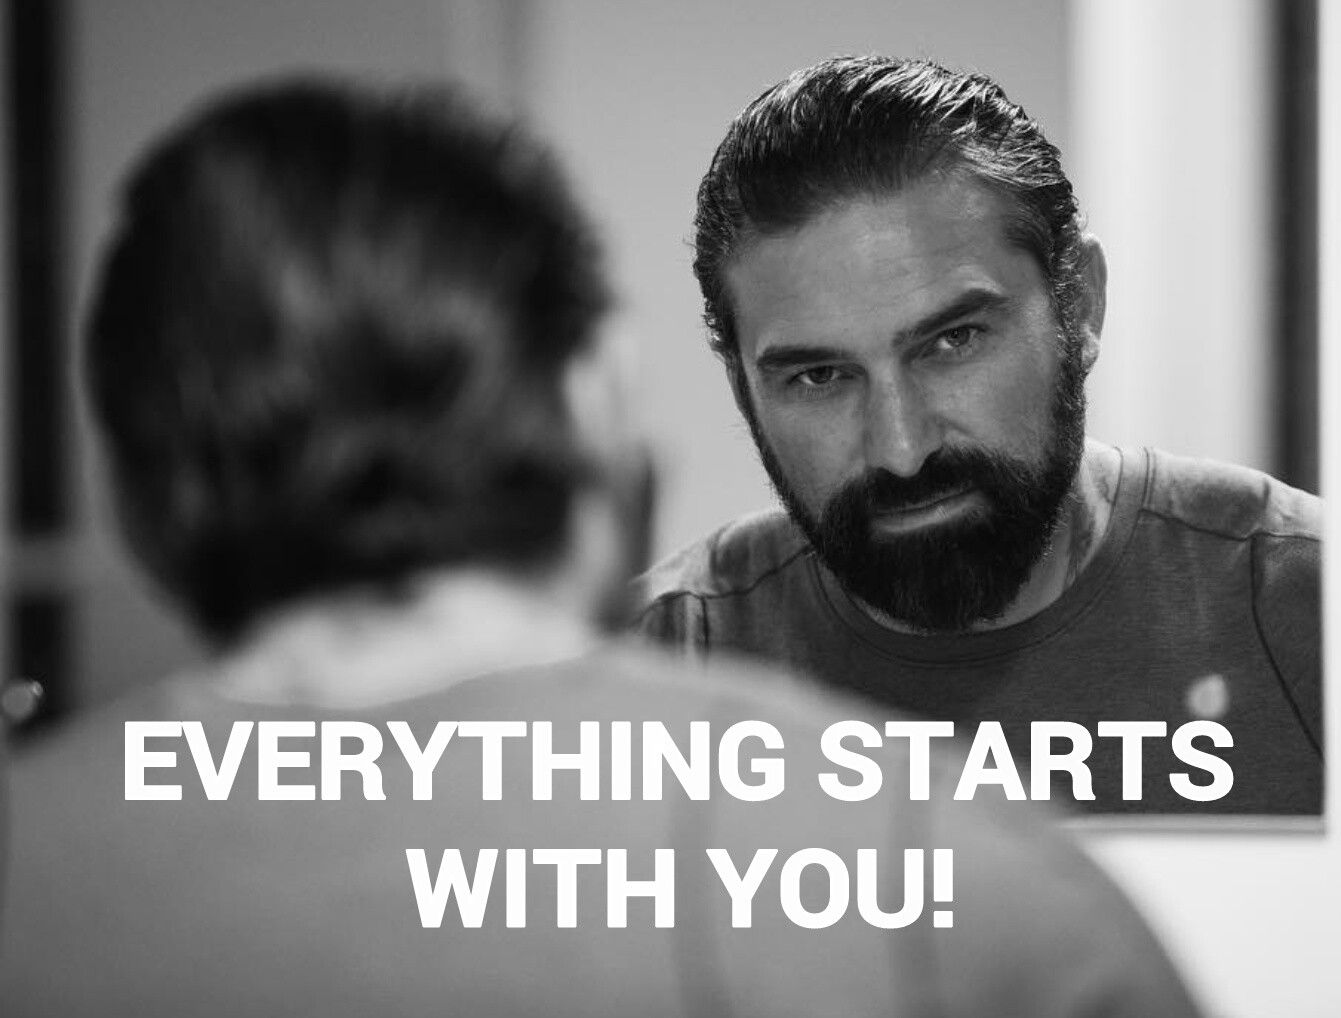 Ant Middleton from Instagram quote motivation Ant